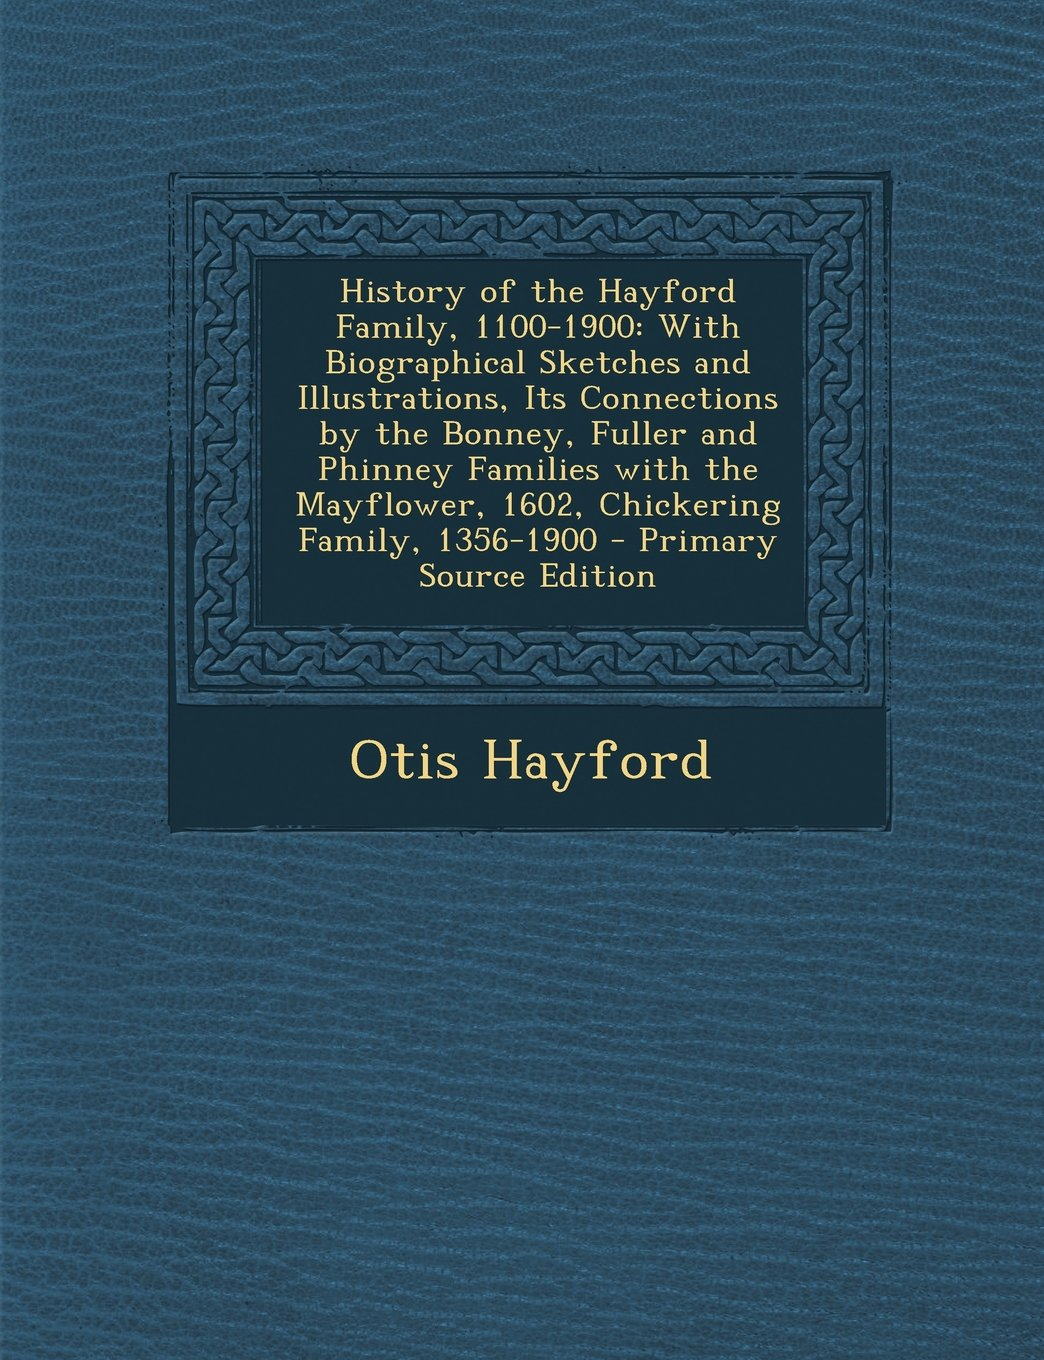 Download History of the Hayford Family, 1100-1900: With Biographical Sketches and Illustrations, Its Connections by the Bonney, Fuller and Phinney Families Wit ebook